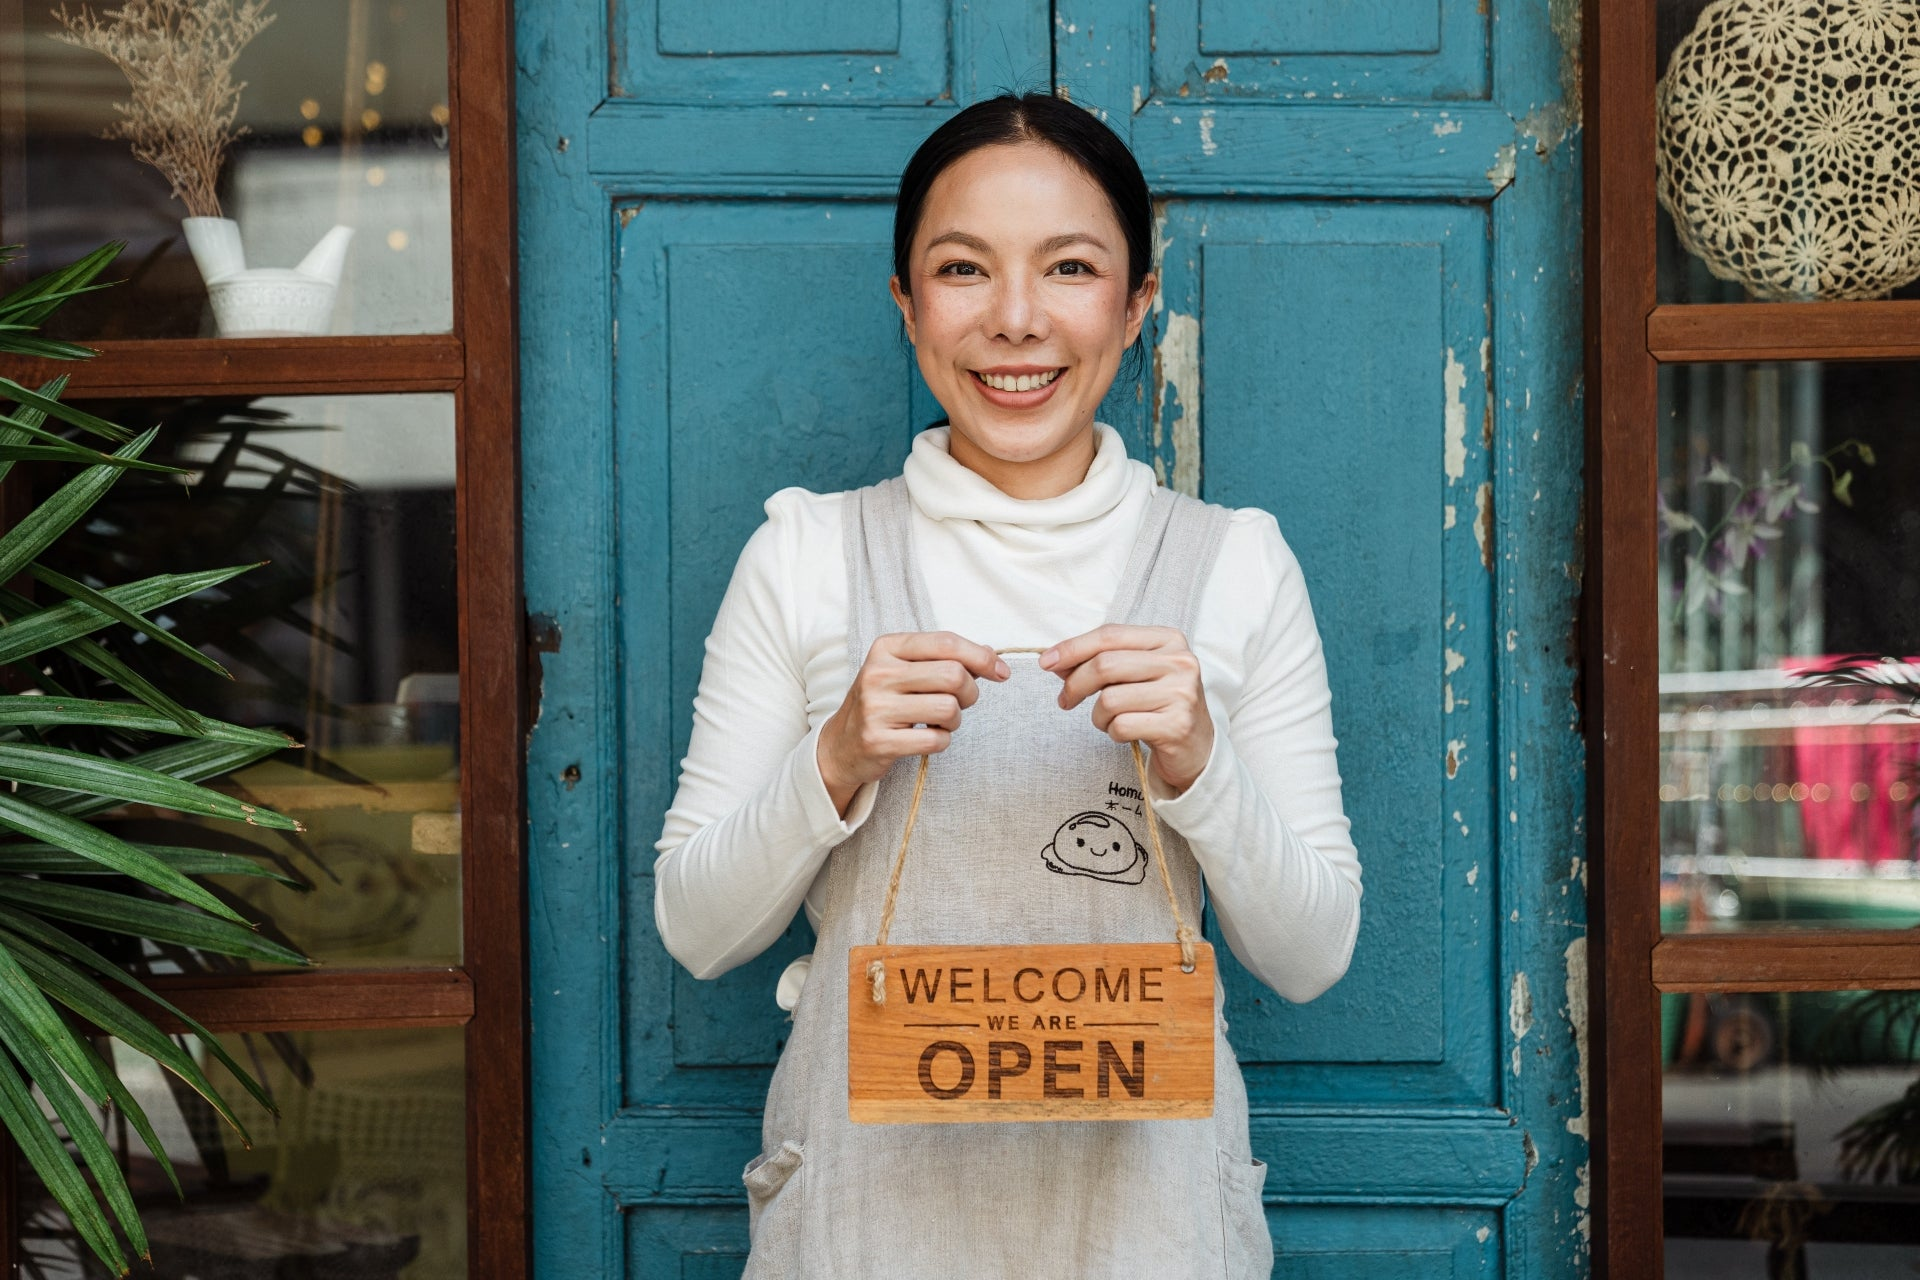 A small business owner stands in front of a teal door holding an open sign.